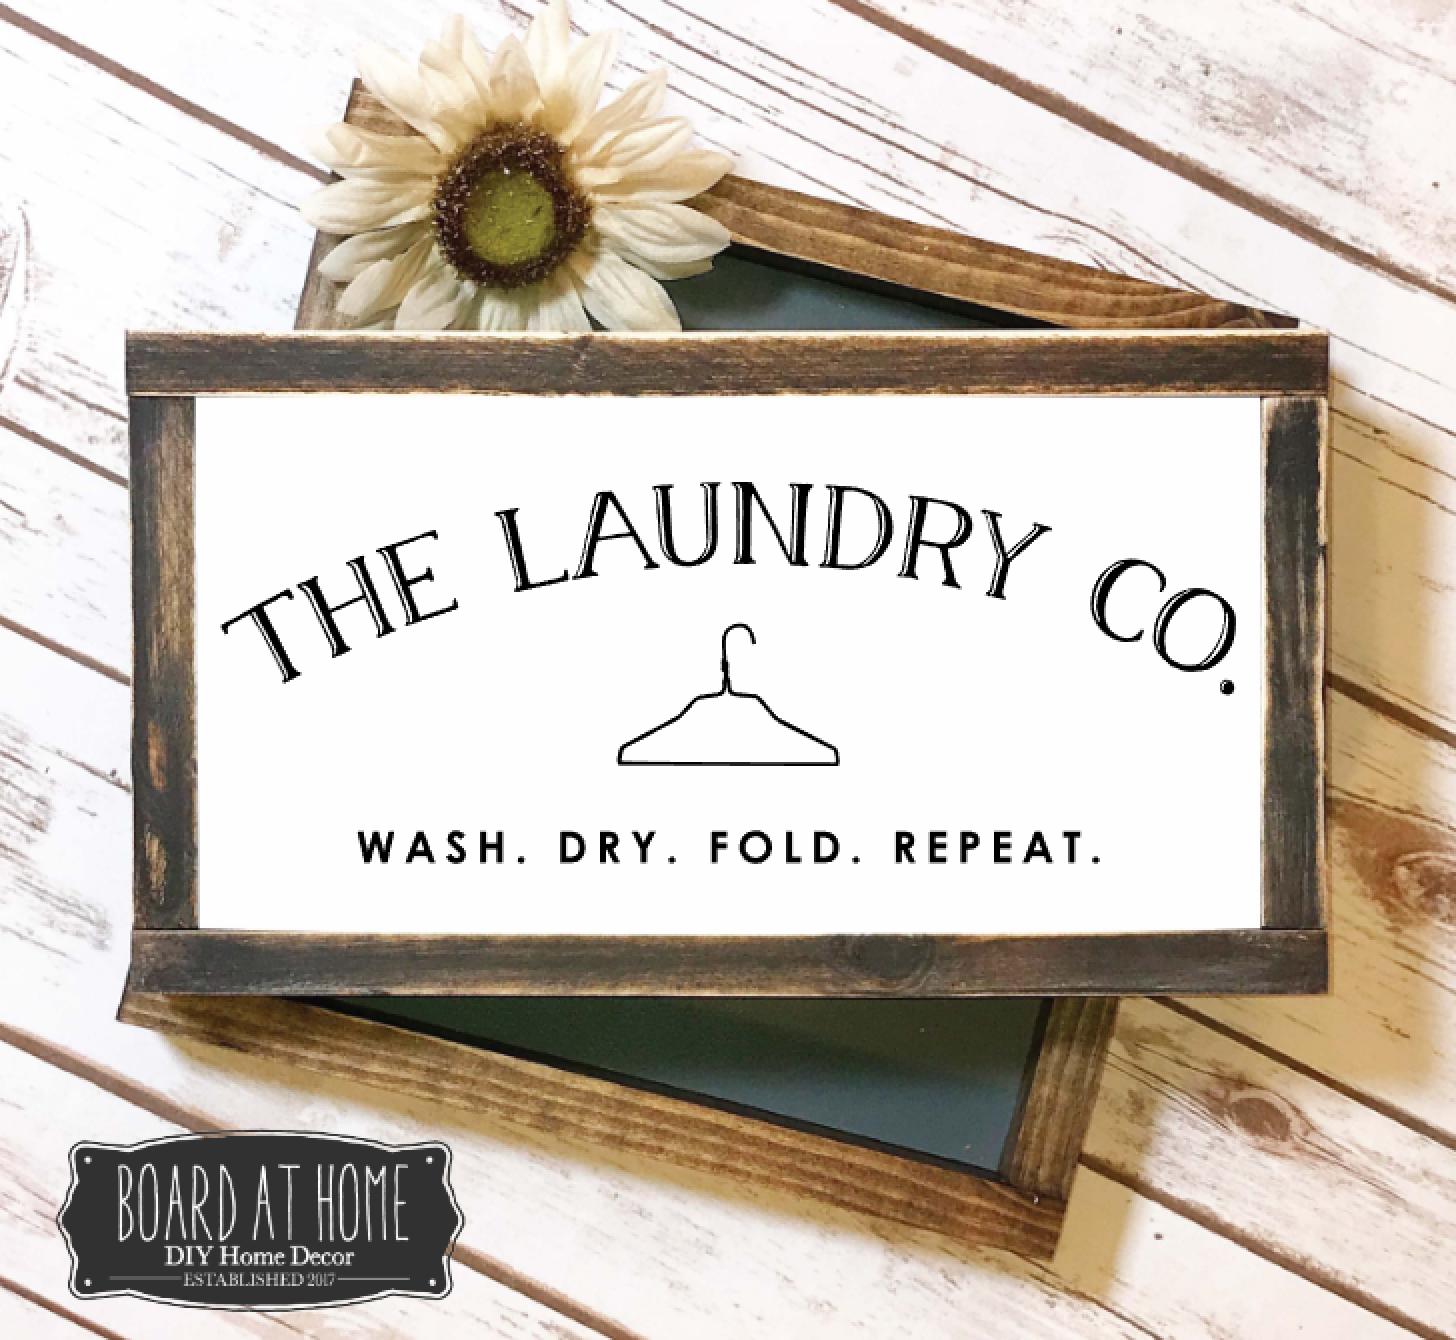 216- the laundry co.